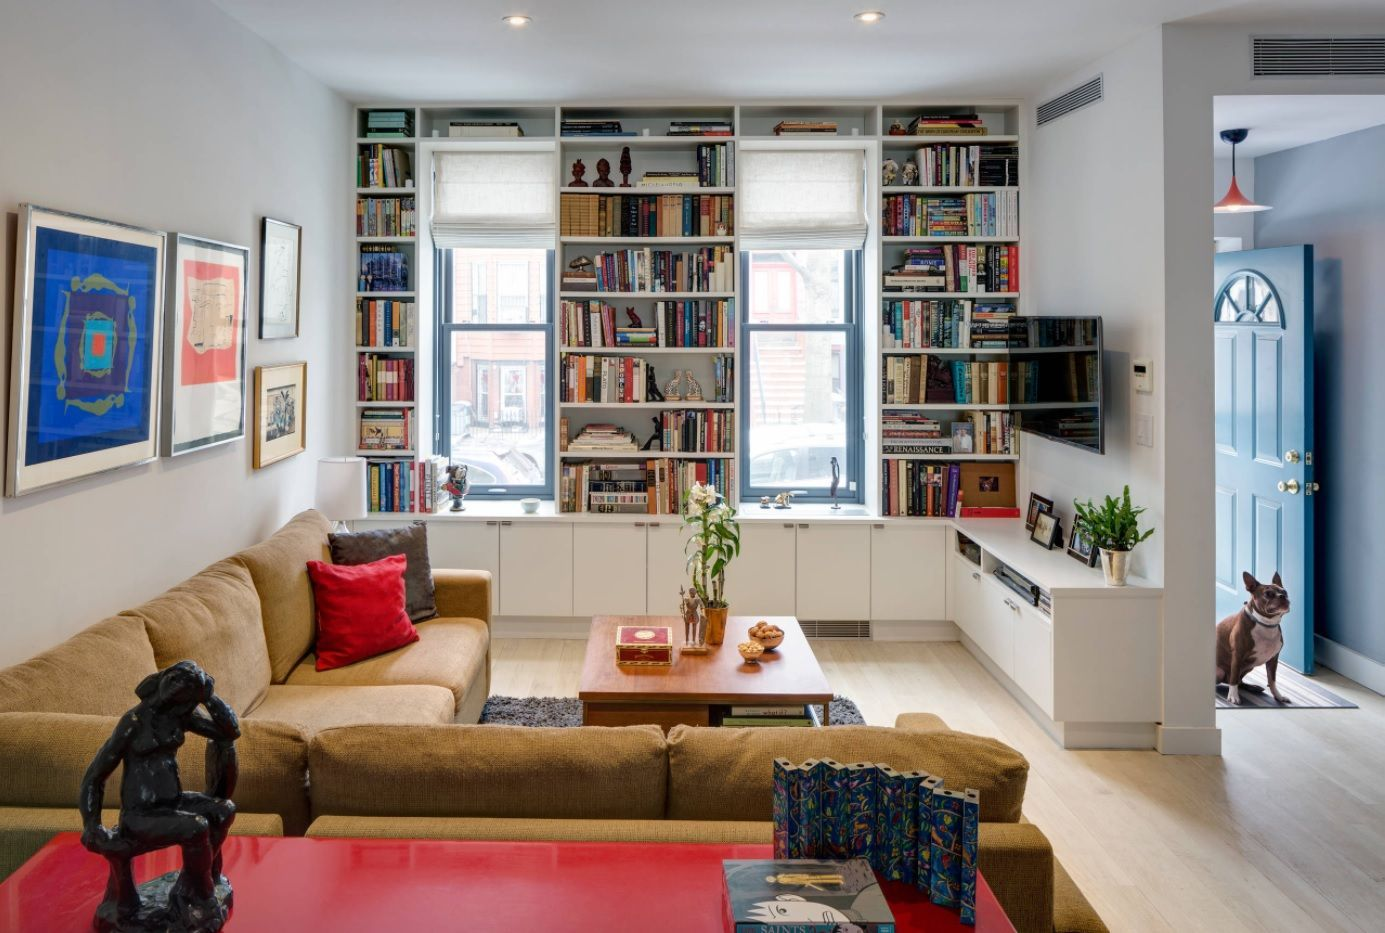 Library living room atmosphere